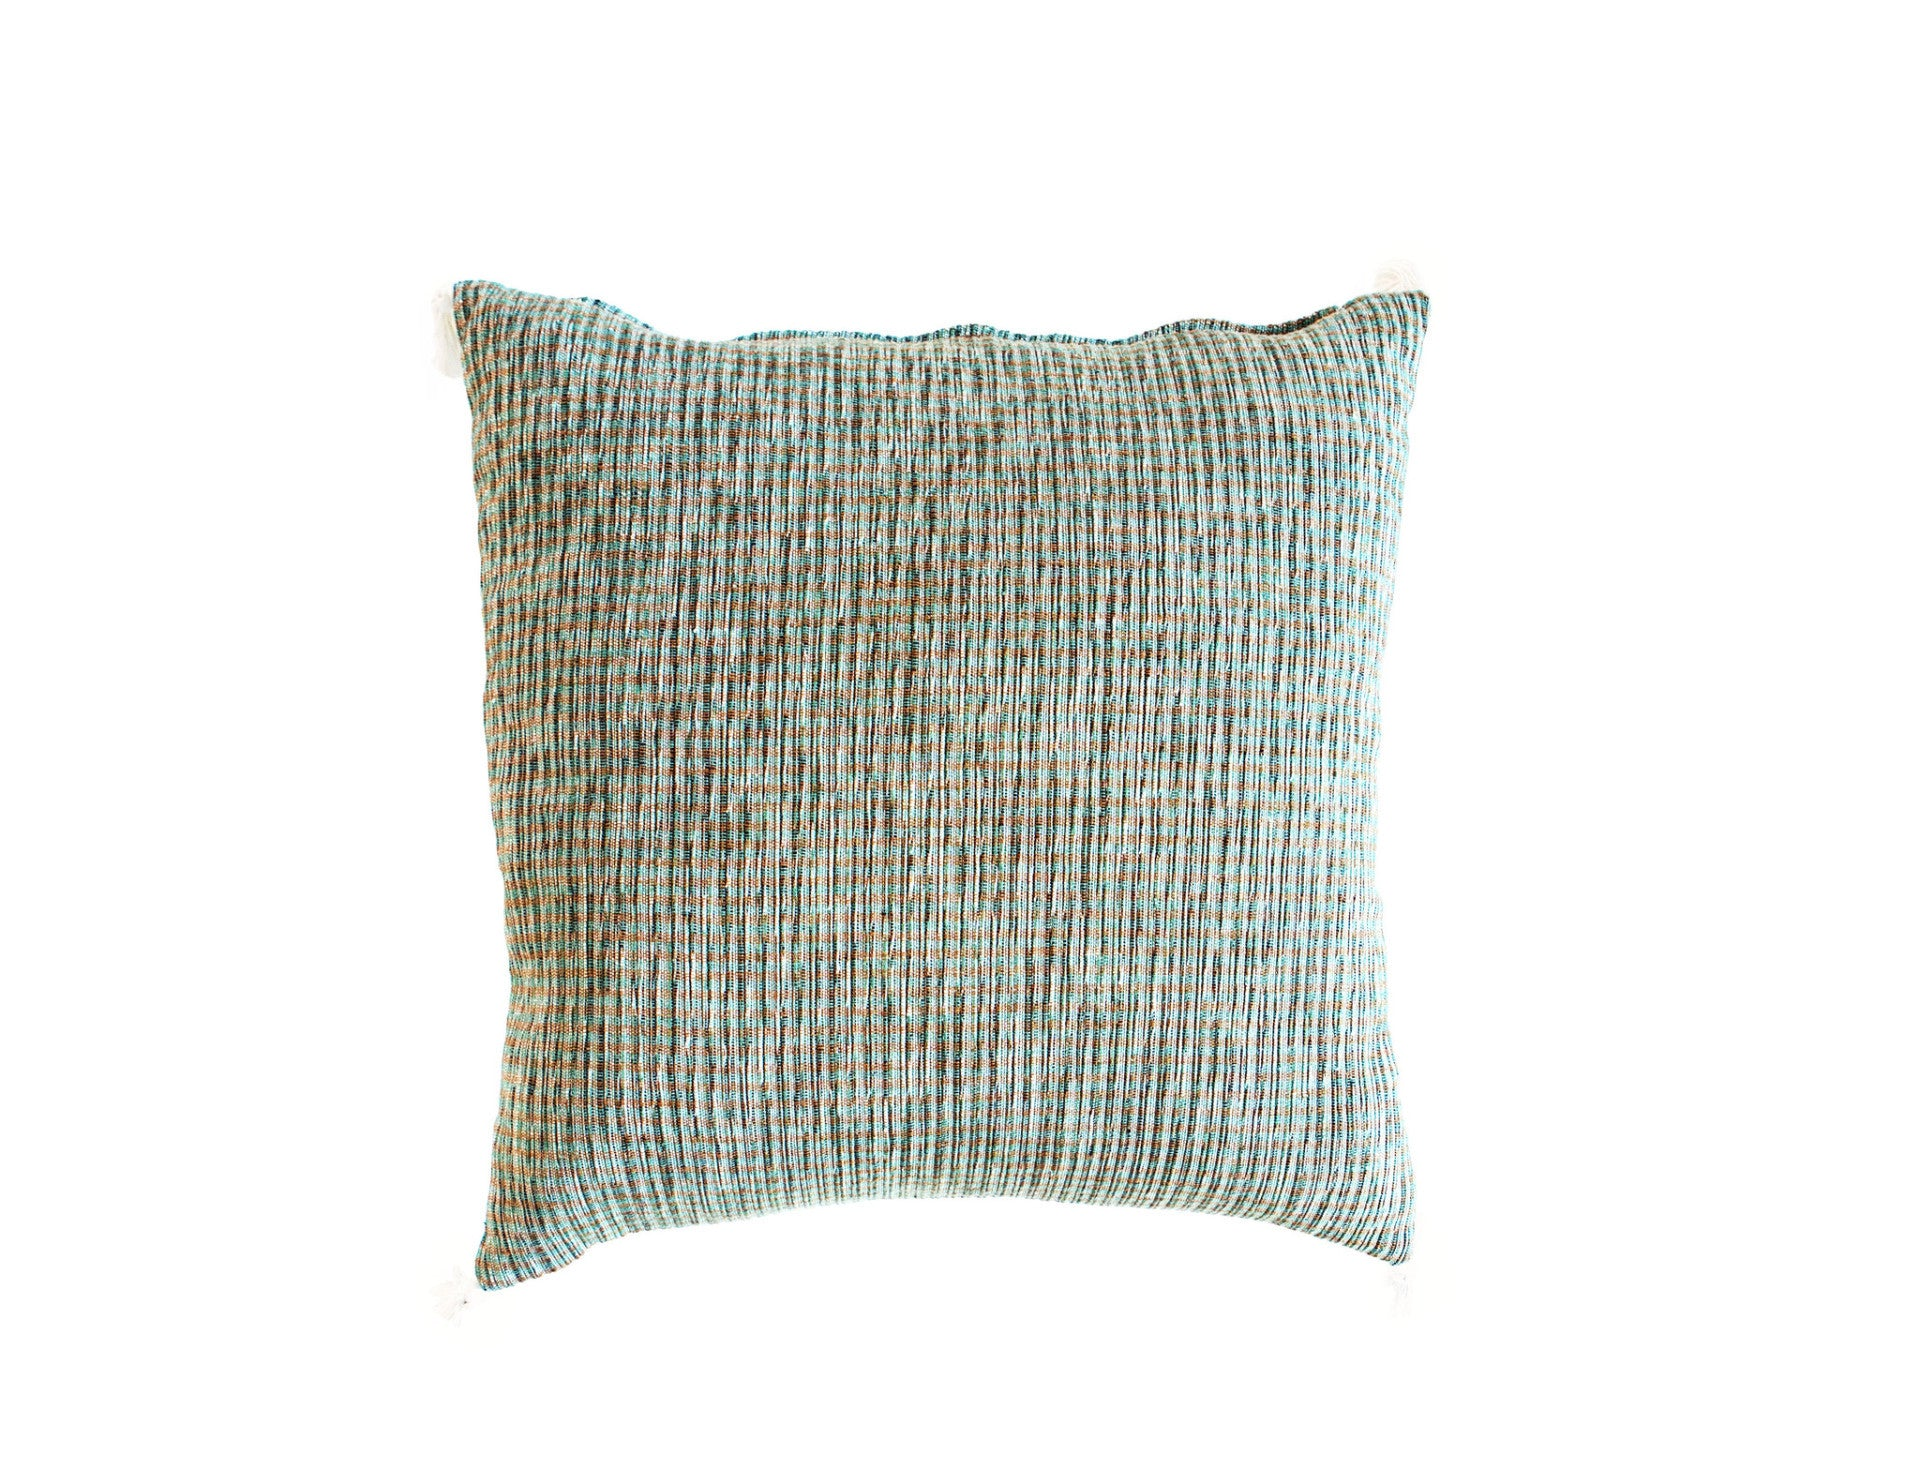 smokyblue case pillow several sizes smoky pillowcase balmuir covers linen blue cushioncovers shop bluenights